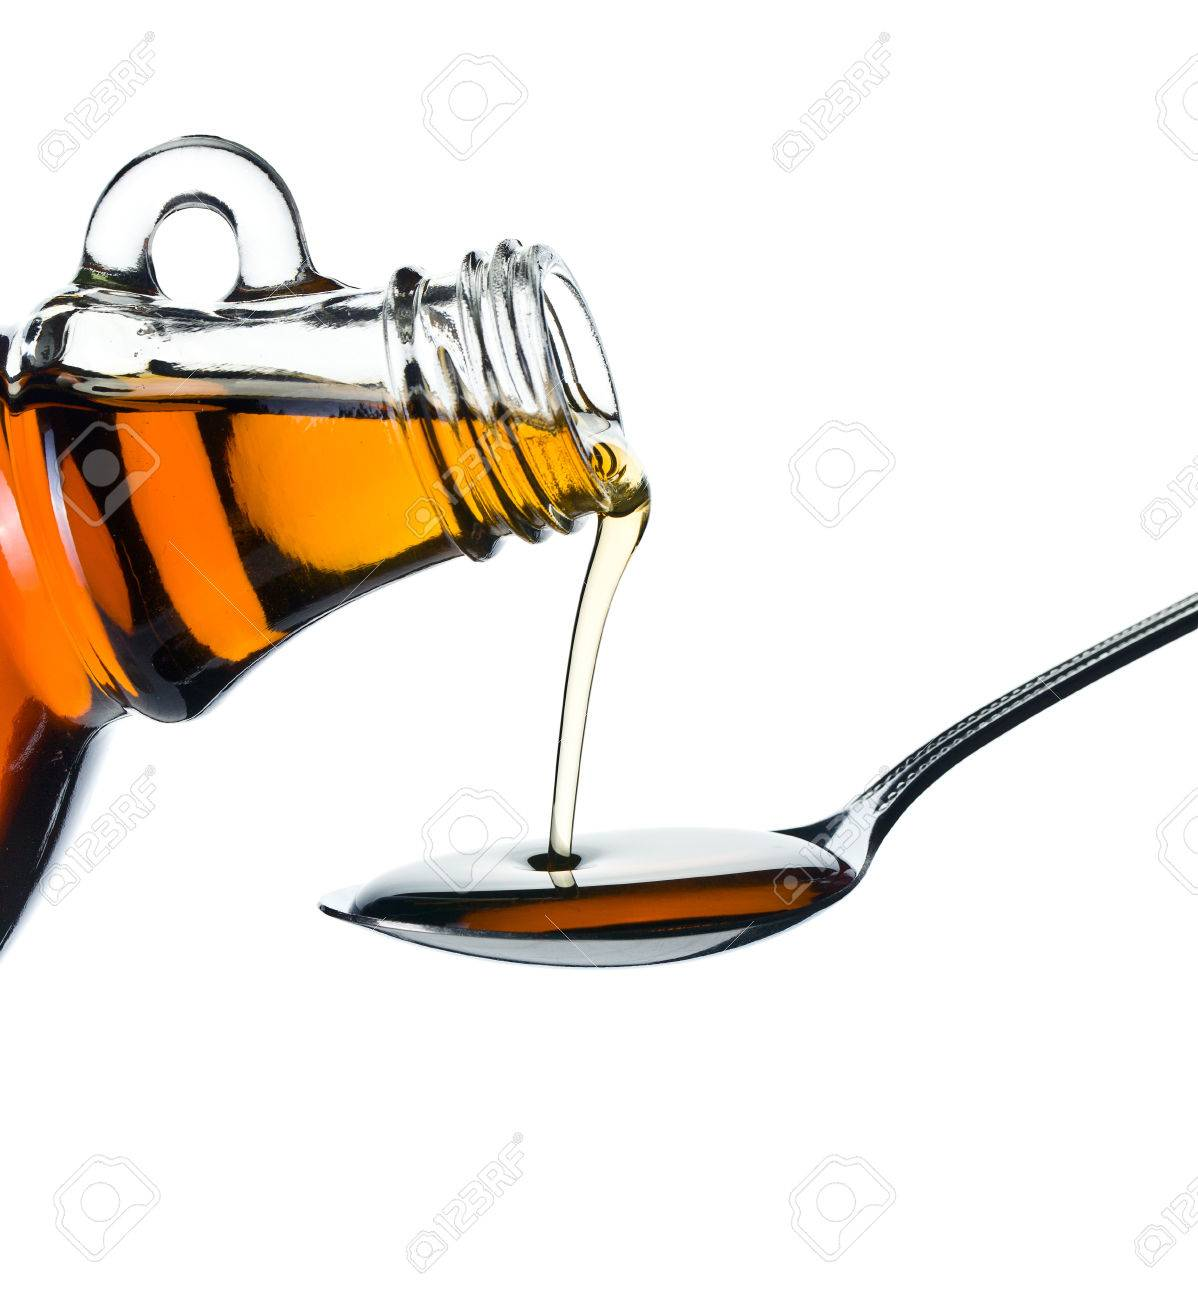 99cd1986093 maple syrup pouring on spoon on white background Stock Photo - 23107735